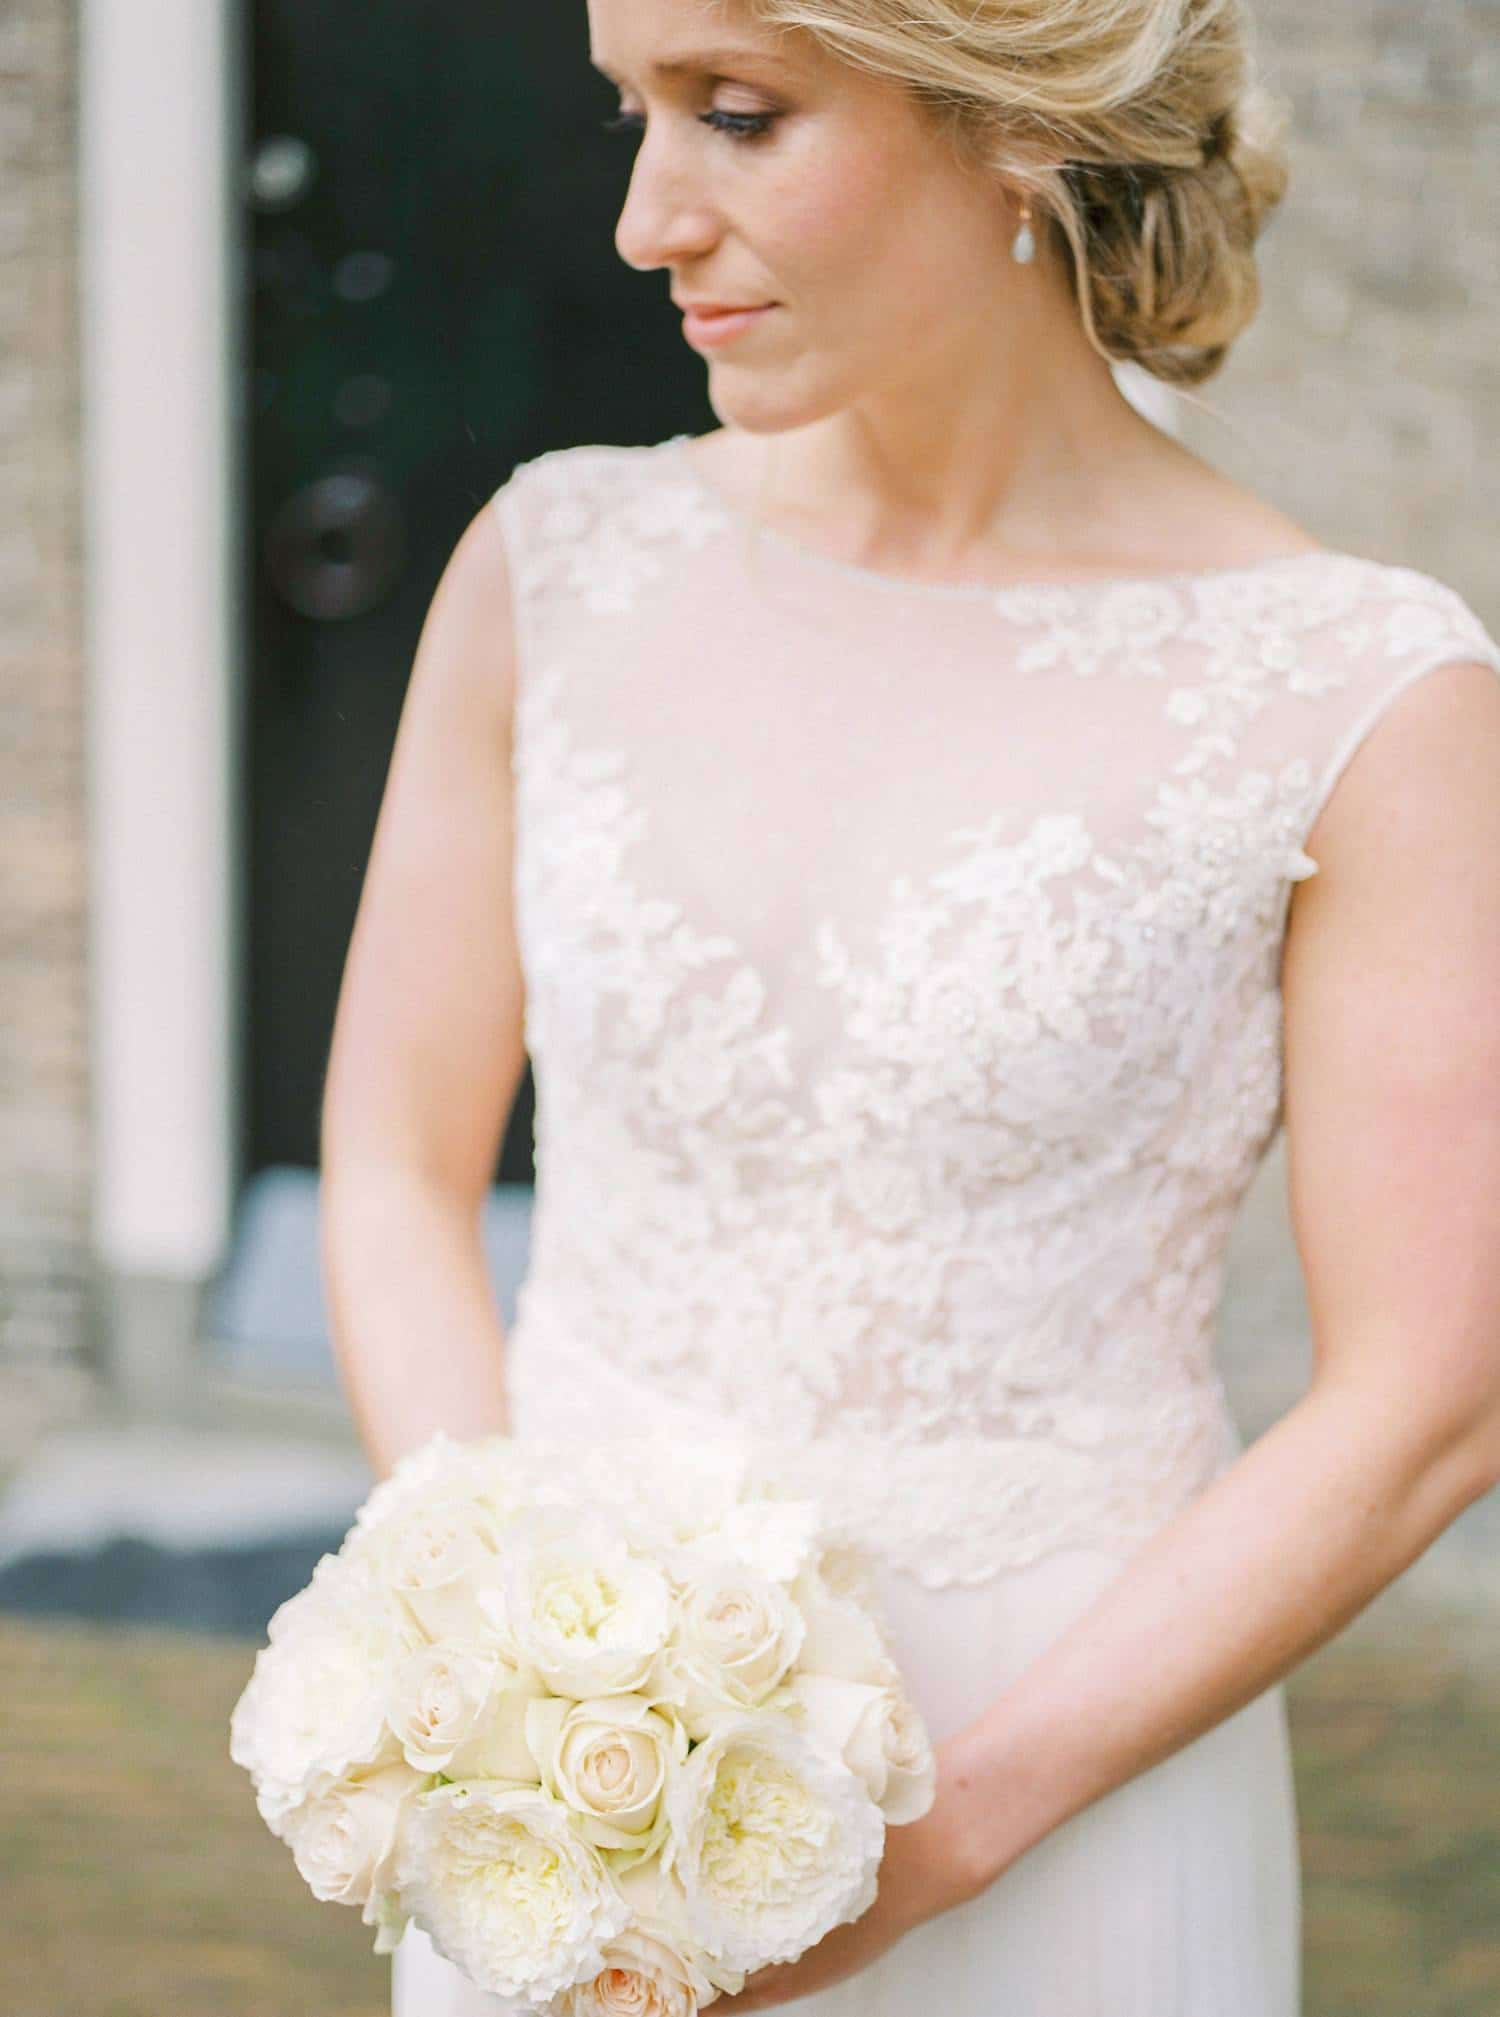 Wedding Stress: How the Bridal Couple Can Deal